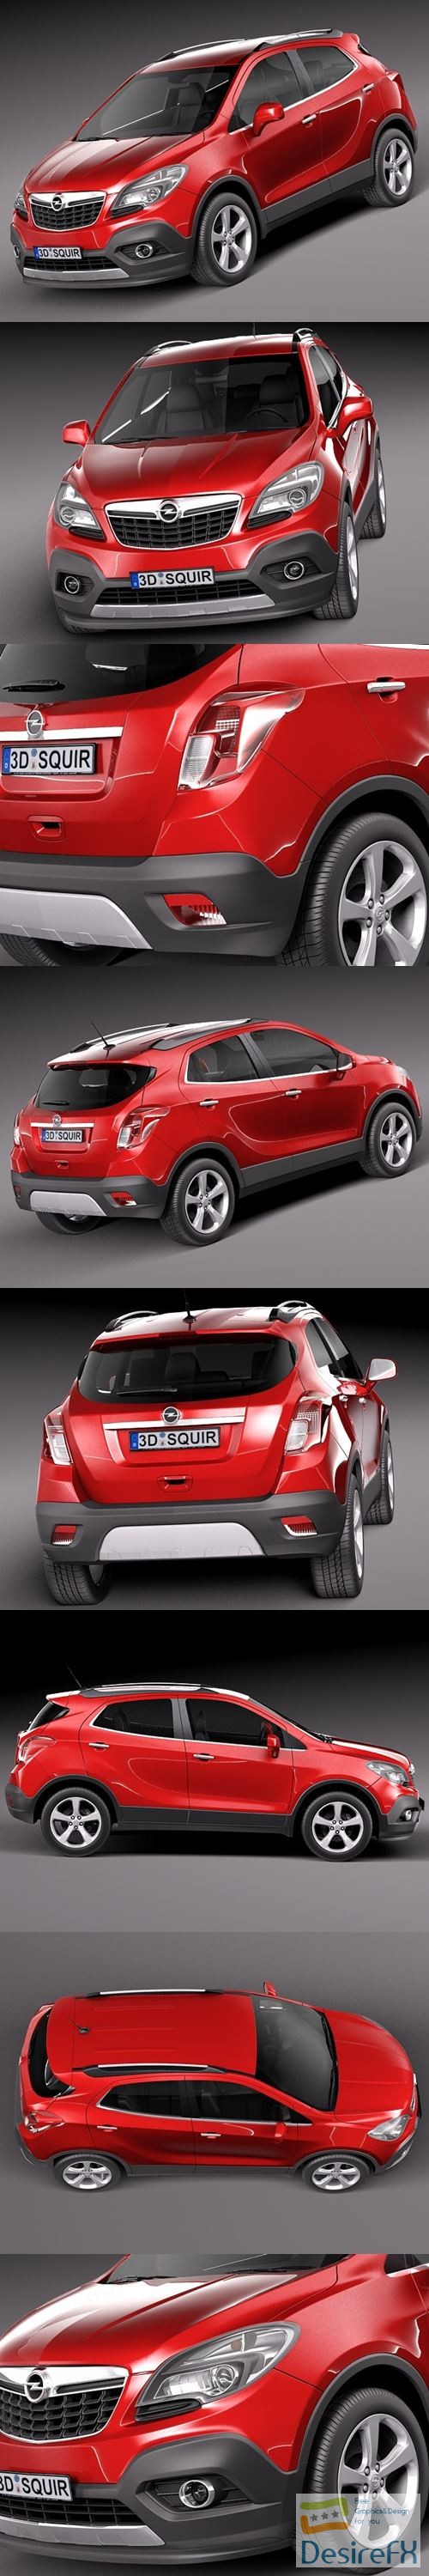 3d-models - Opel Mokka 2013 3D Model